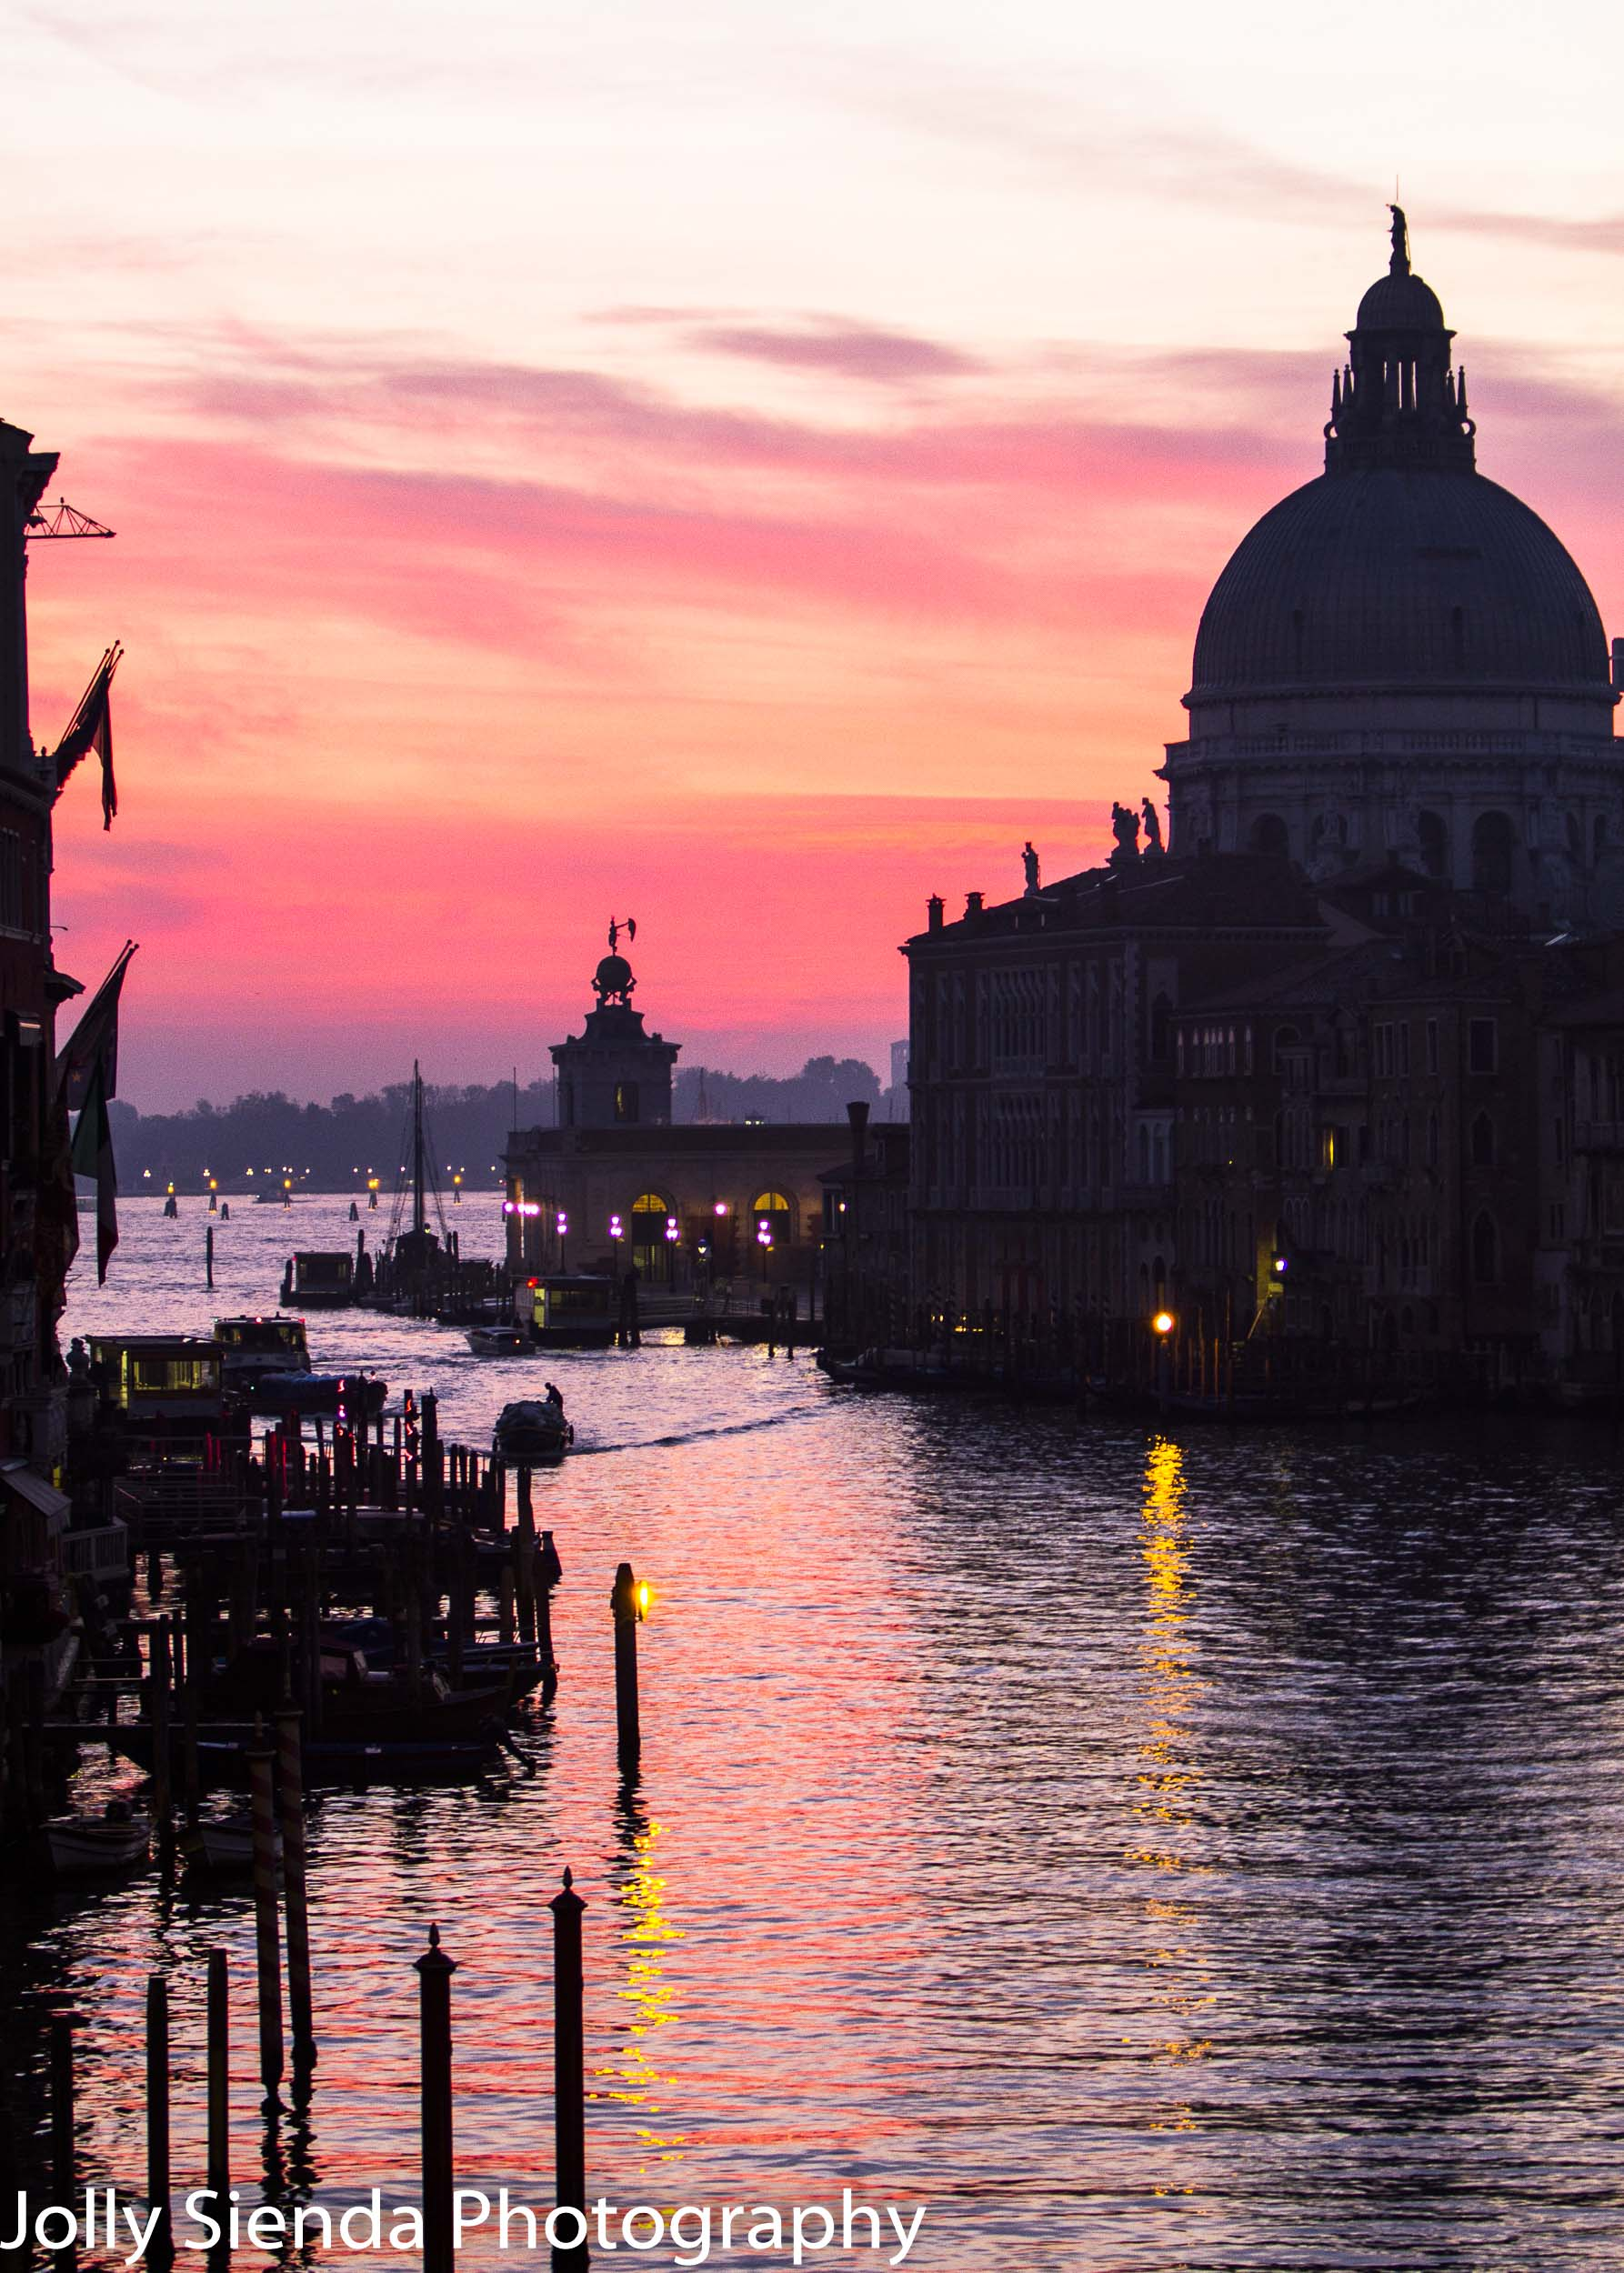 Pink and yellow sunrise over Santa Maria della salute and the Gr